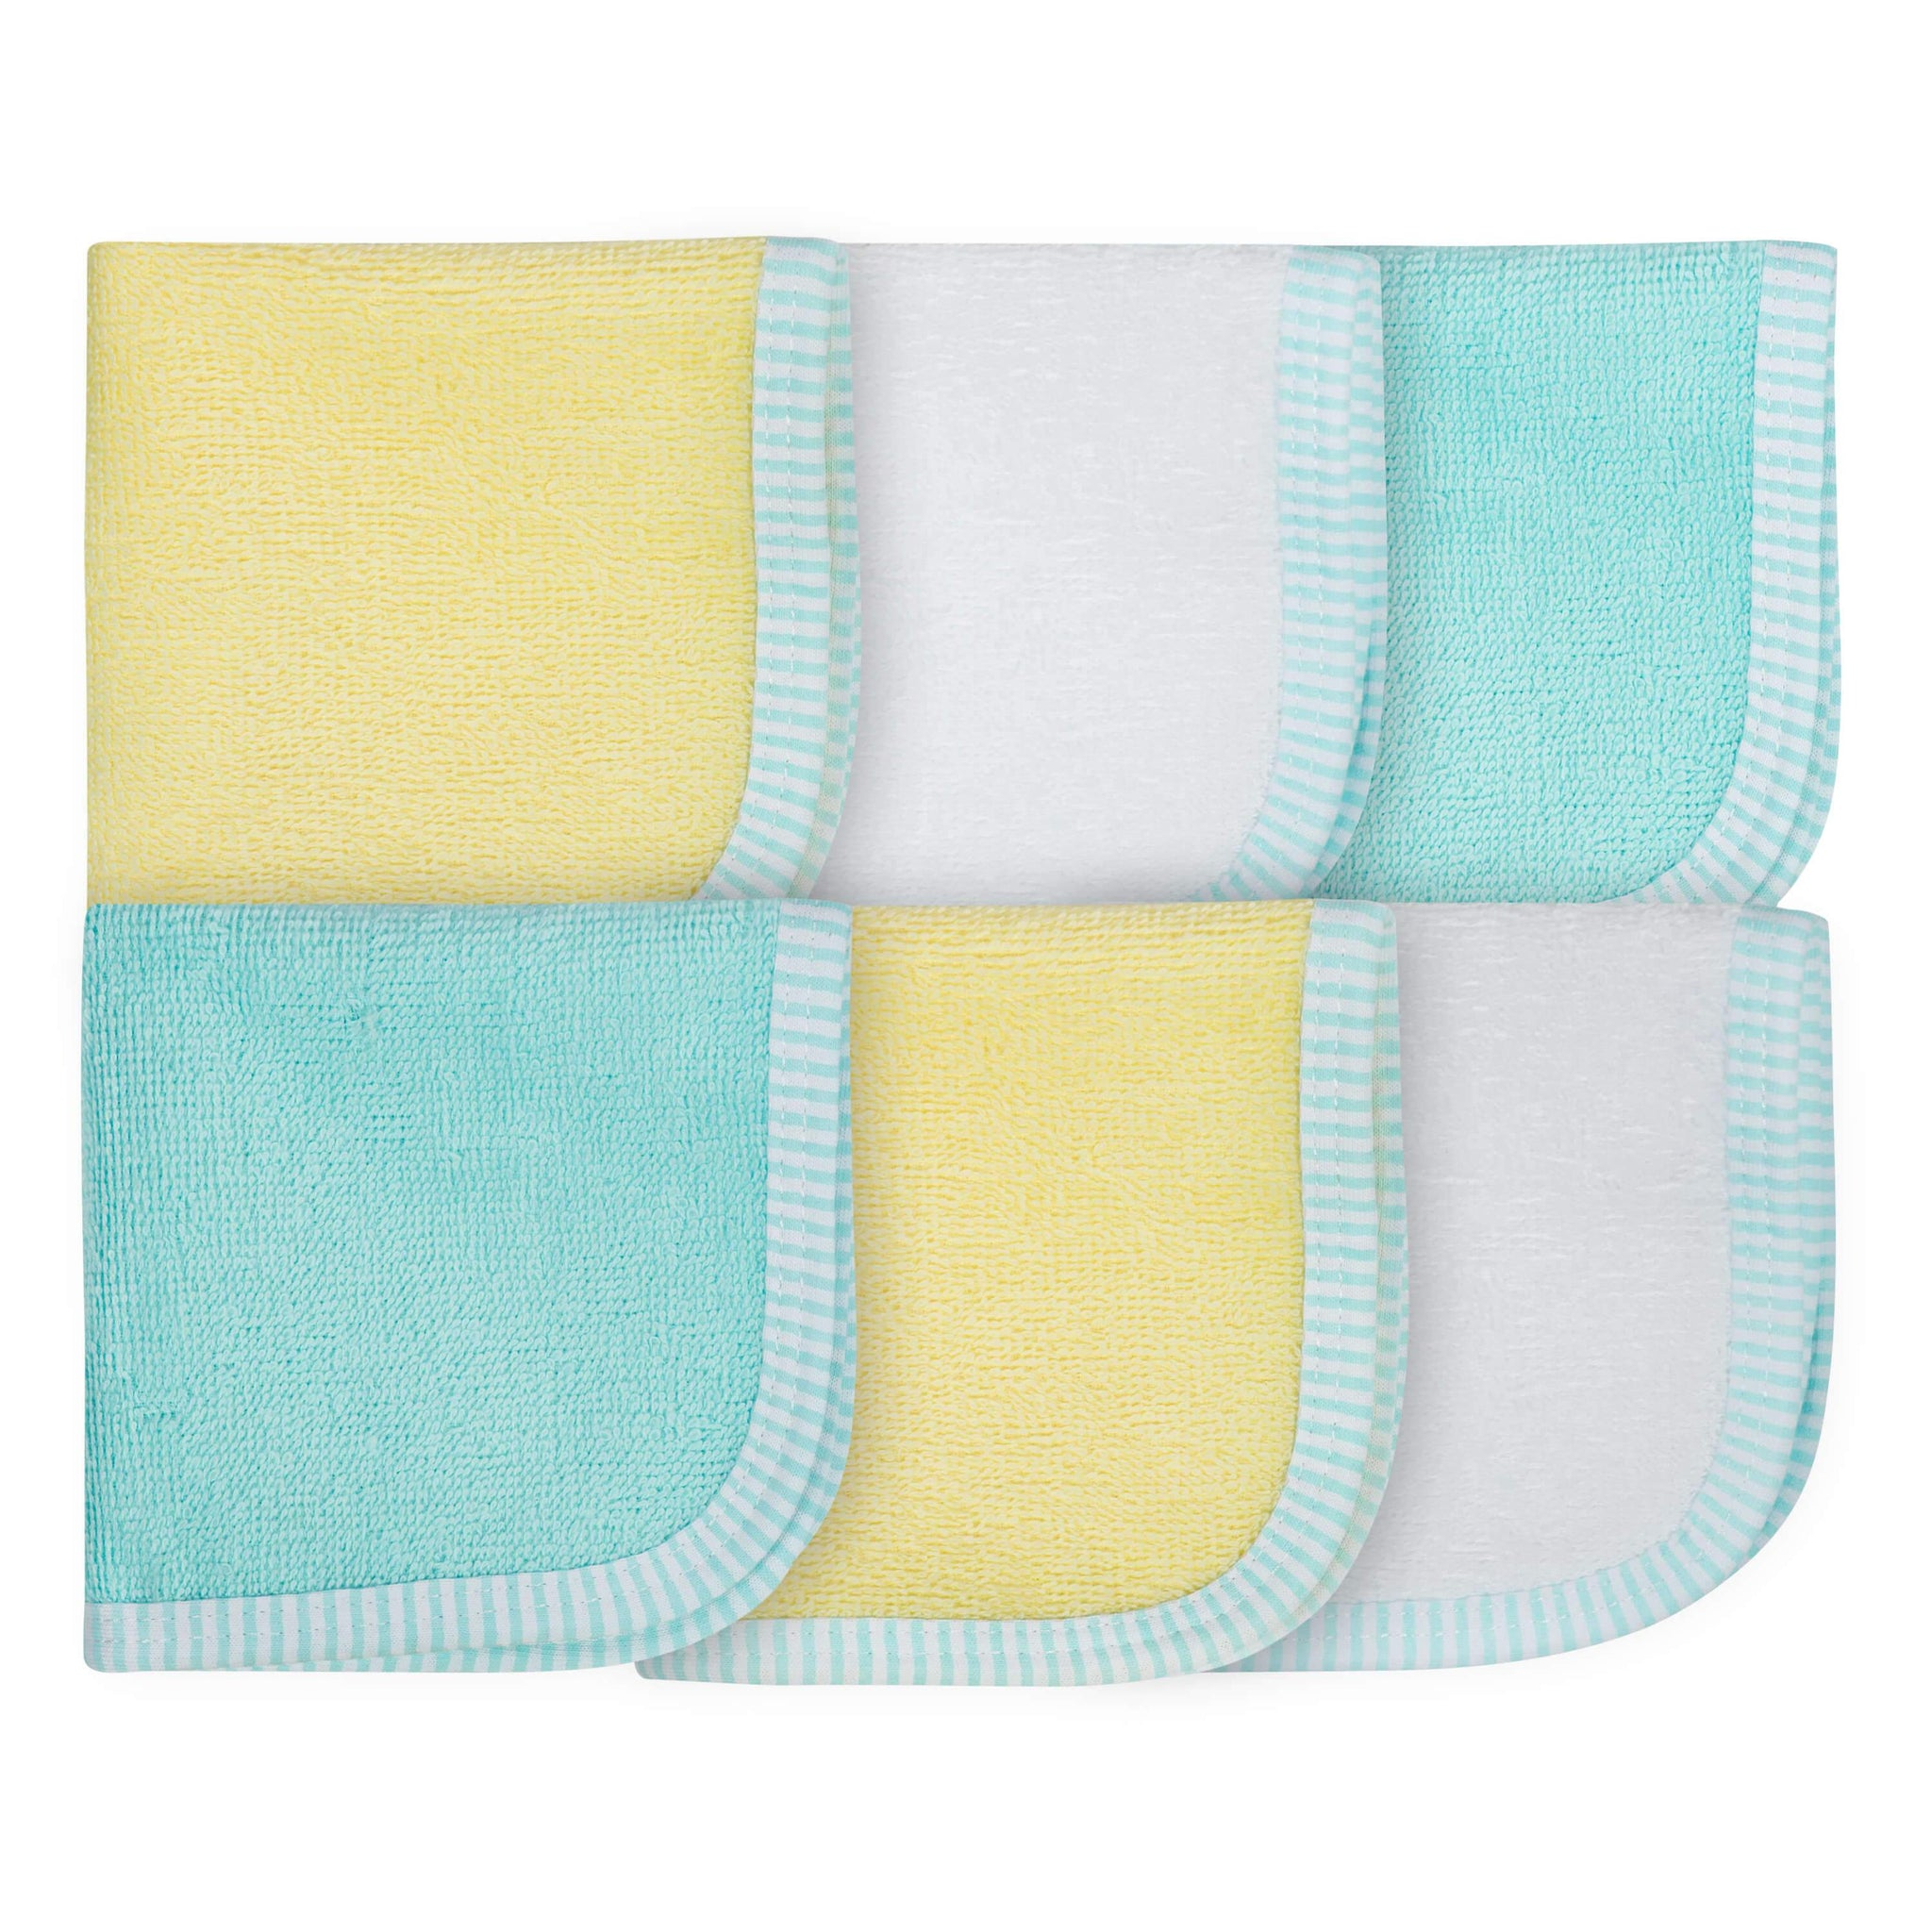 6-Pack Neutral Yellow and Blue Woven Washcloths